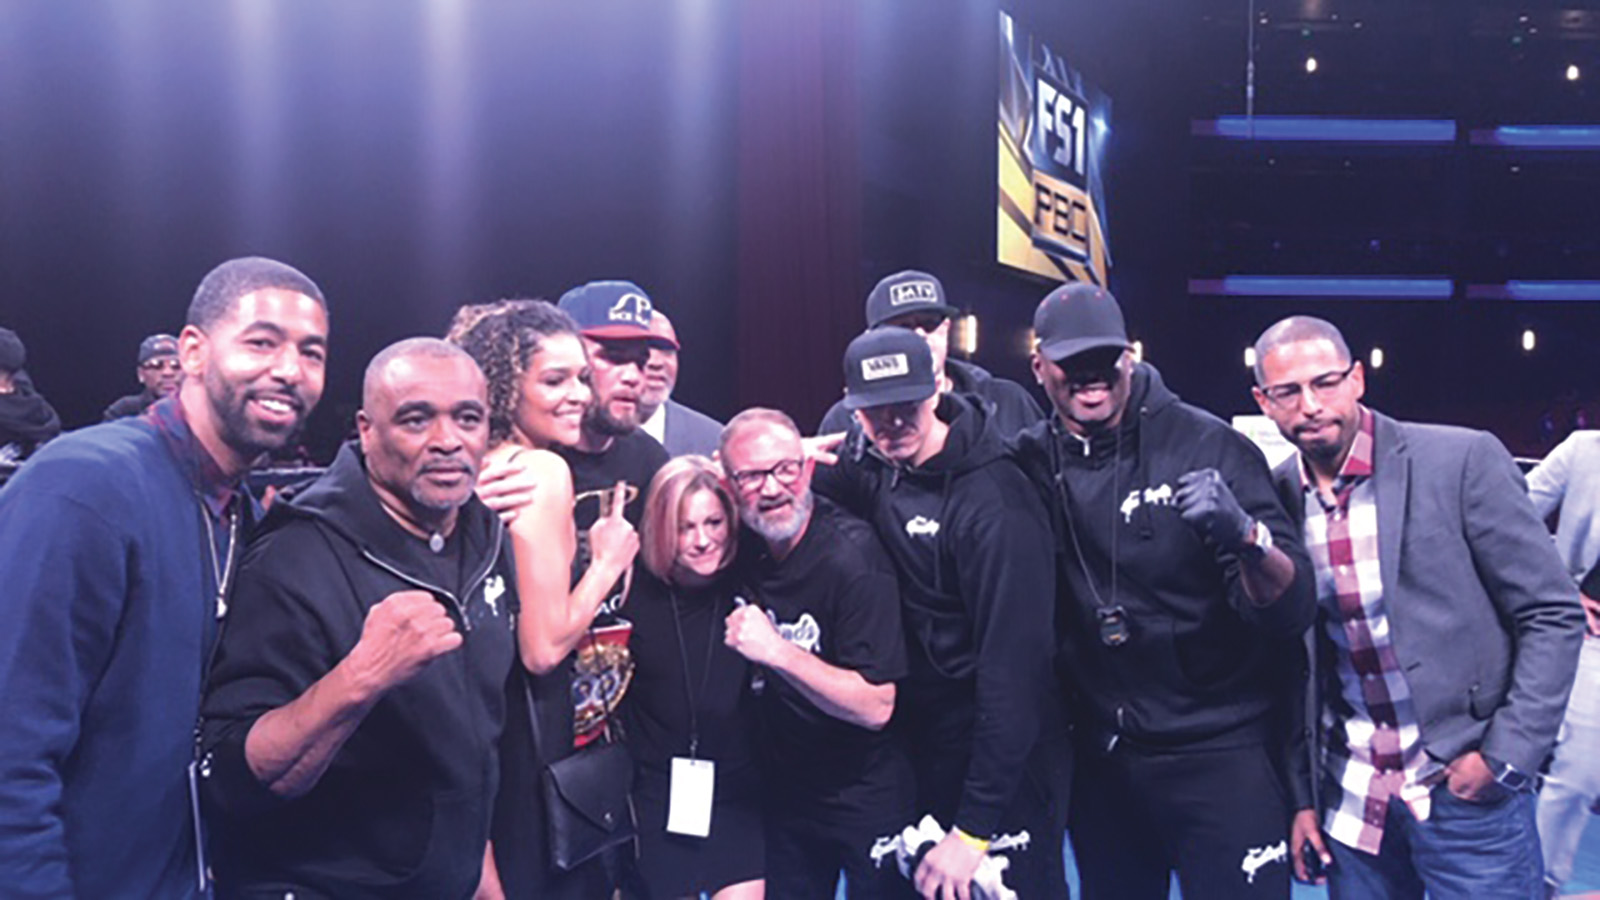 Team Plant celebrate Caleb Plants IBF Super Middleweight Championship win. (What's good in sports photo)